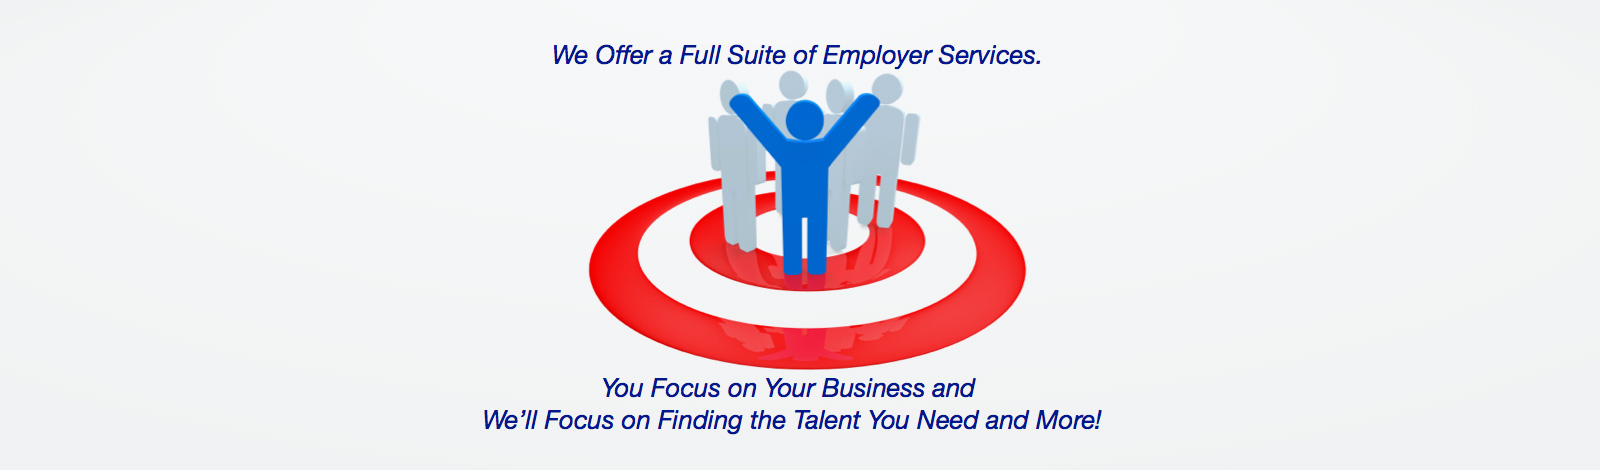 PT Systems Offers a Full Suite of Recruiting and Staffing Employers Services